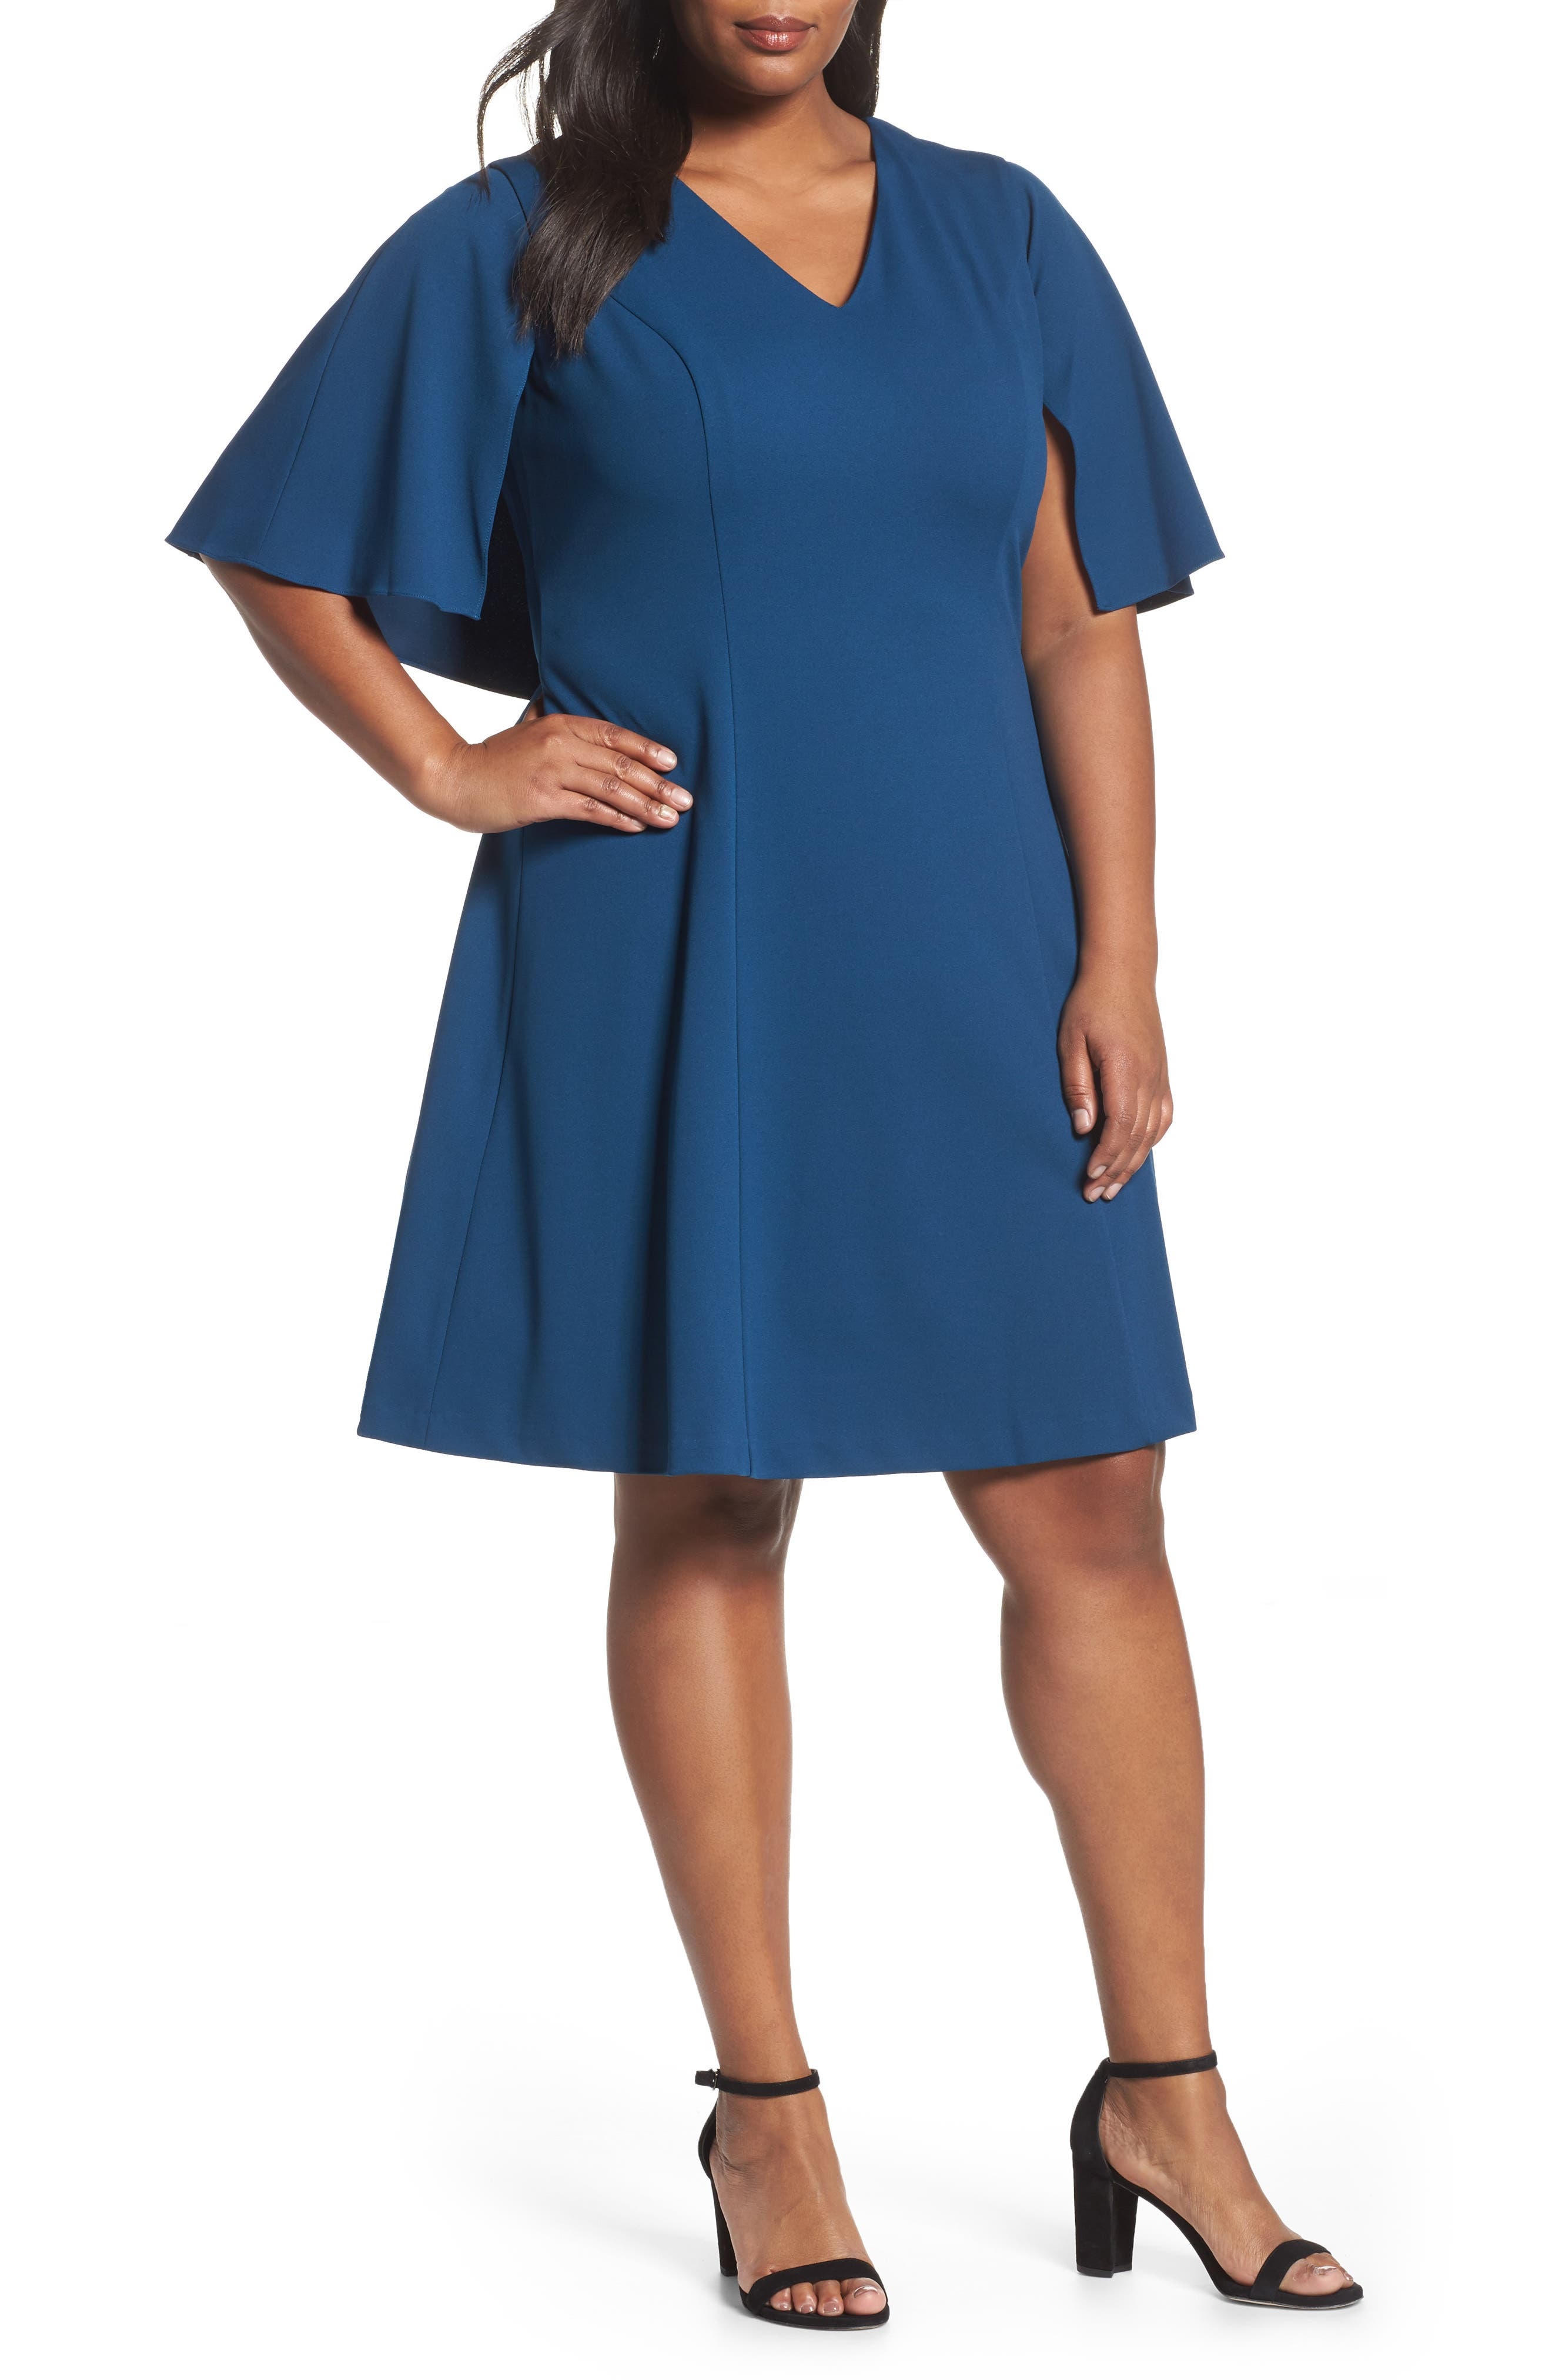 Alternate Image 1 Selected - Adrianna Papell Capelet A-Line Dress (Plus Size)